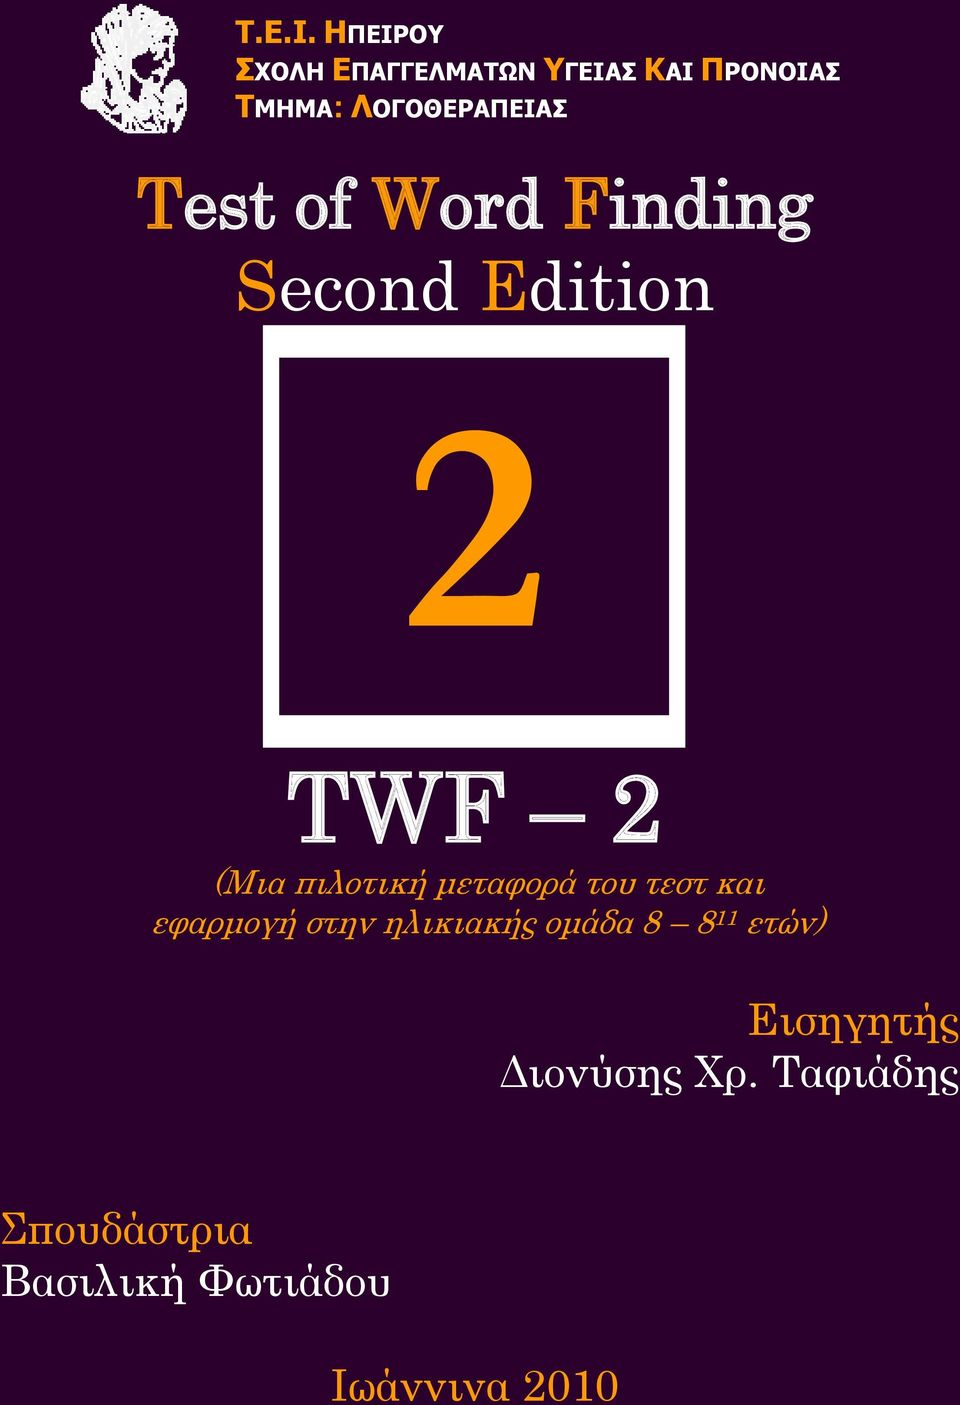 Test of Word Finding Second Edition 2 TWF 2 (Μια πιλοτική μεταφορά